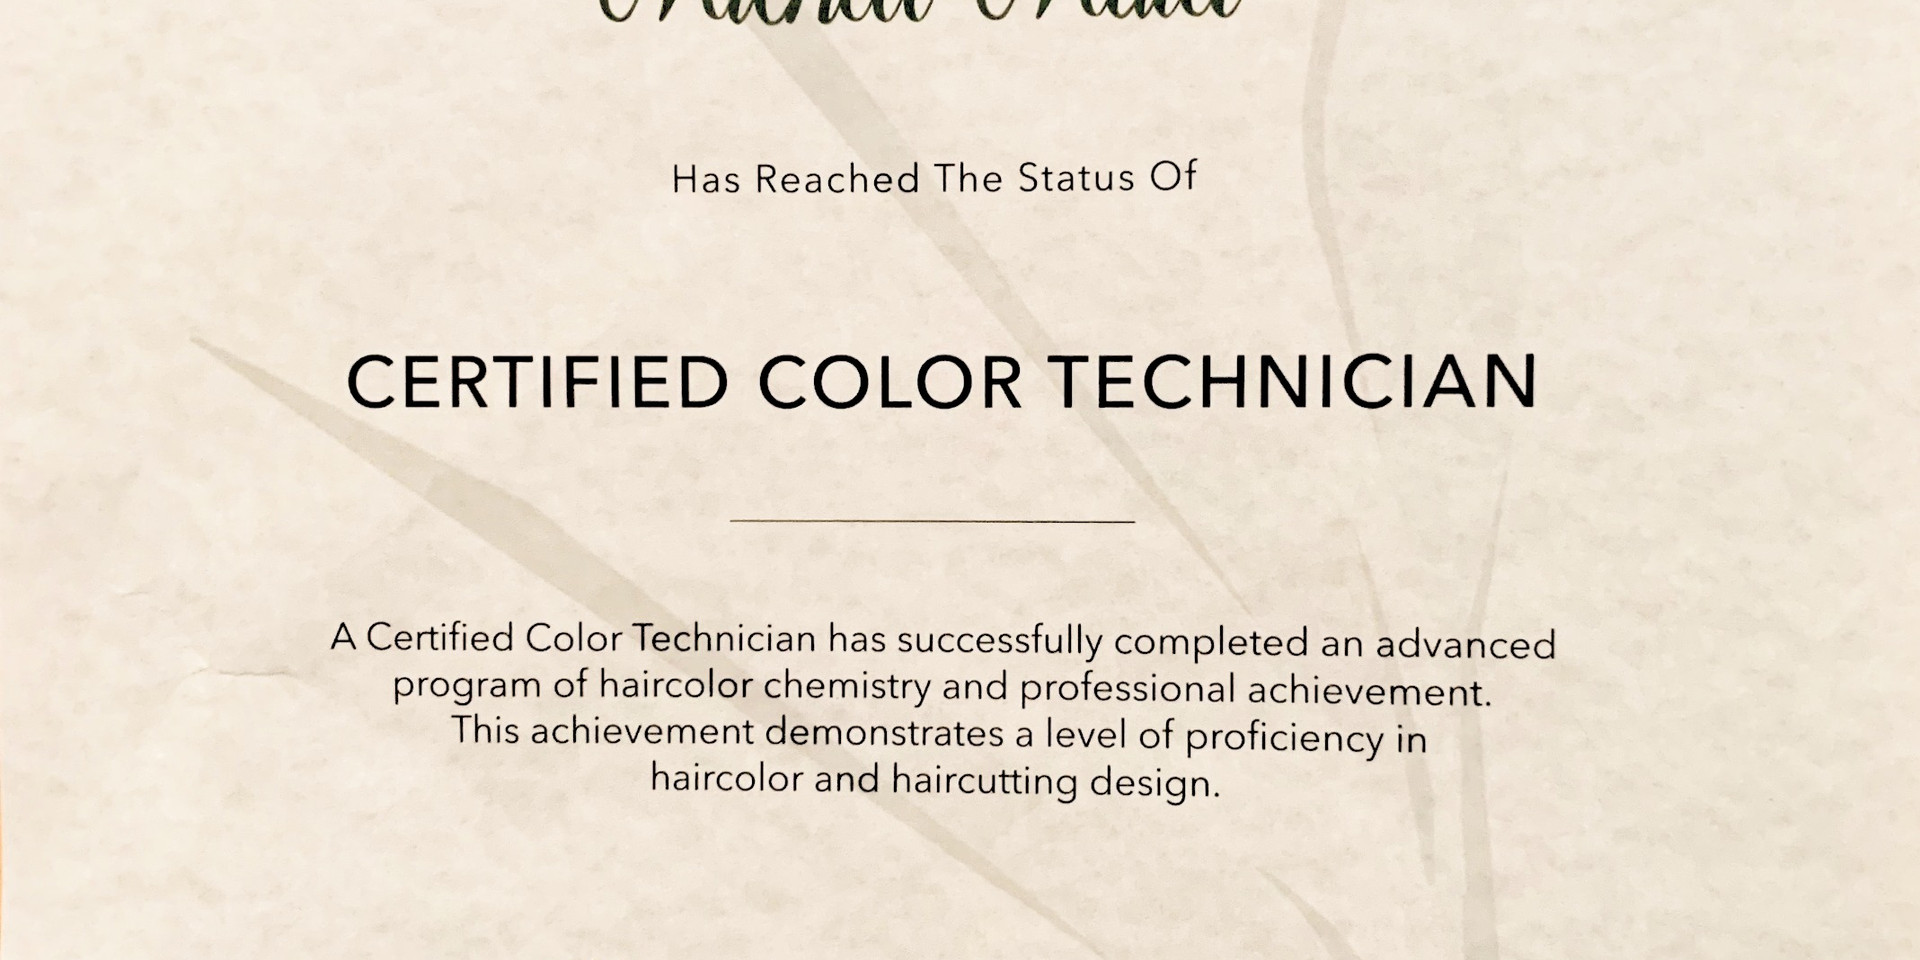 Certified Color Technician